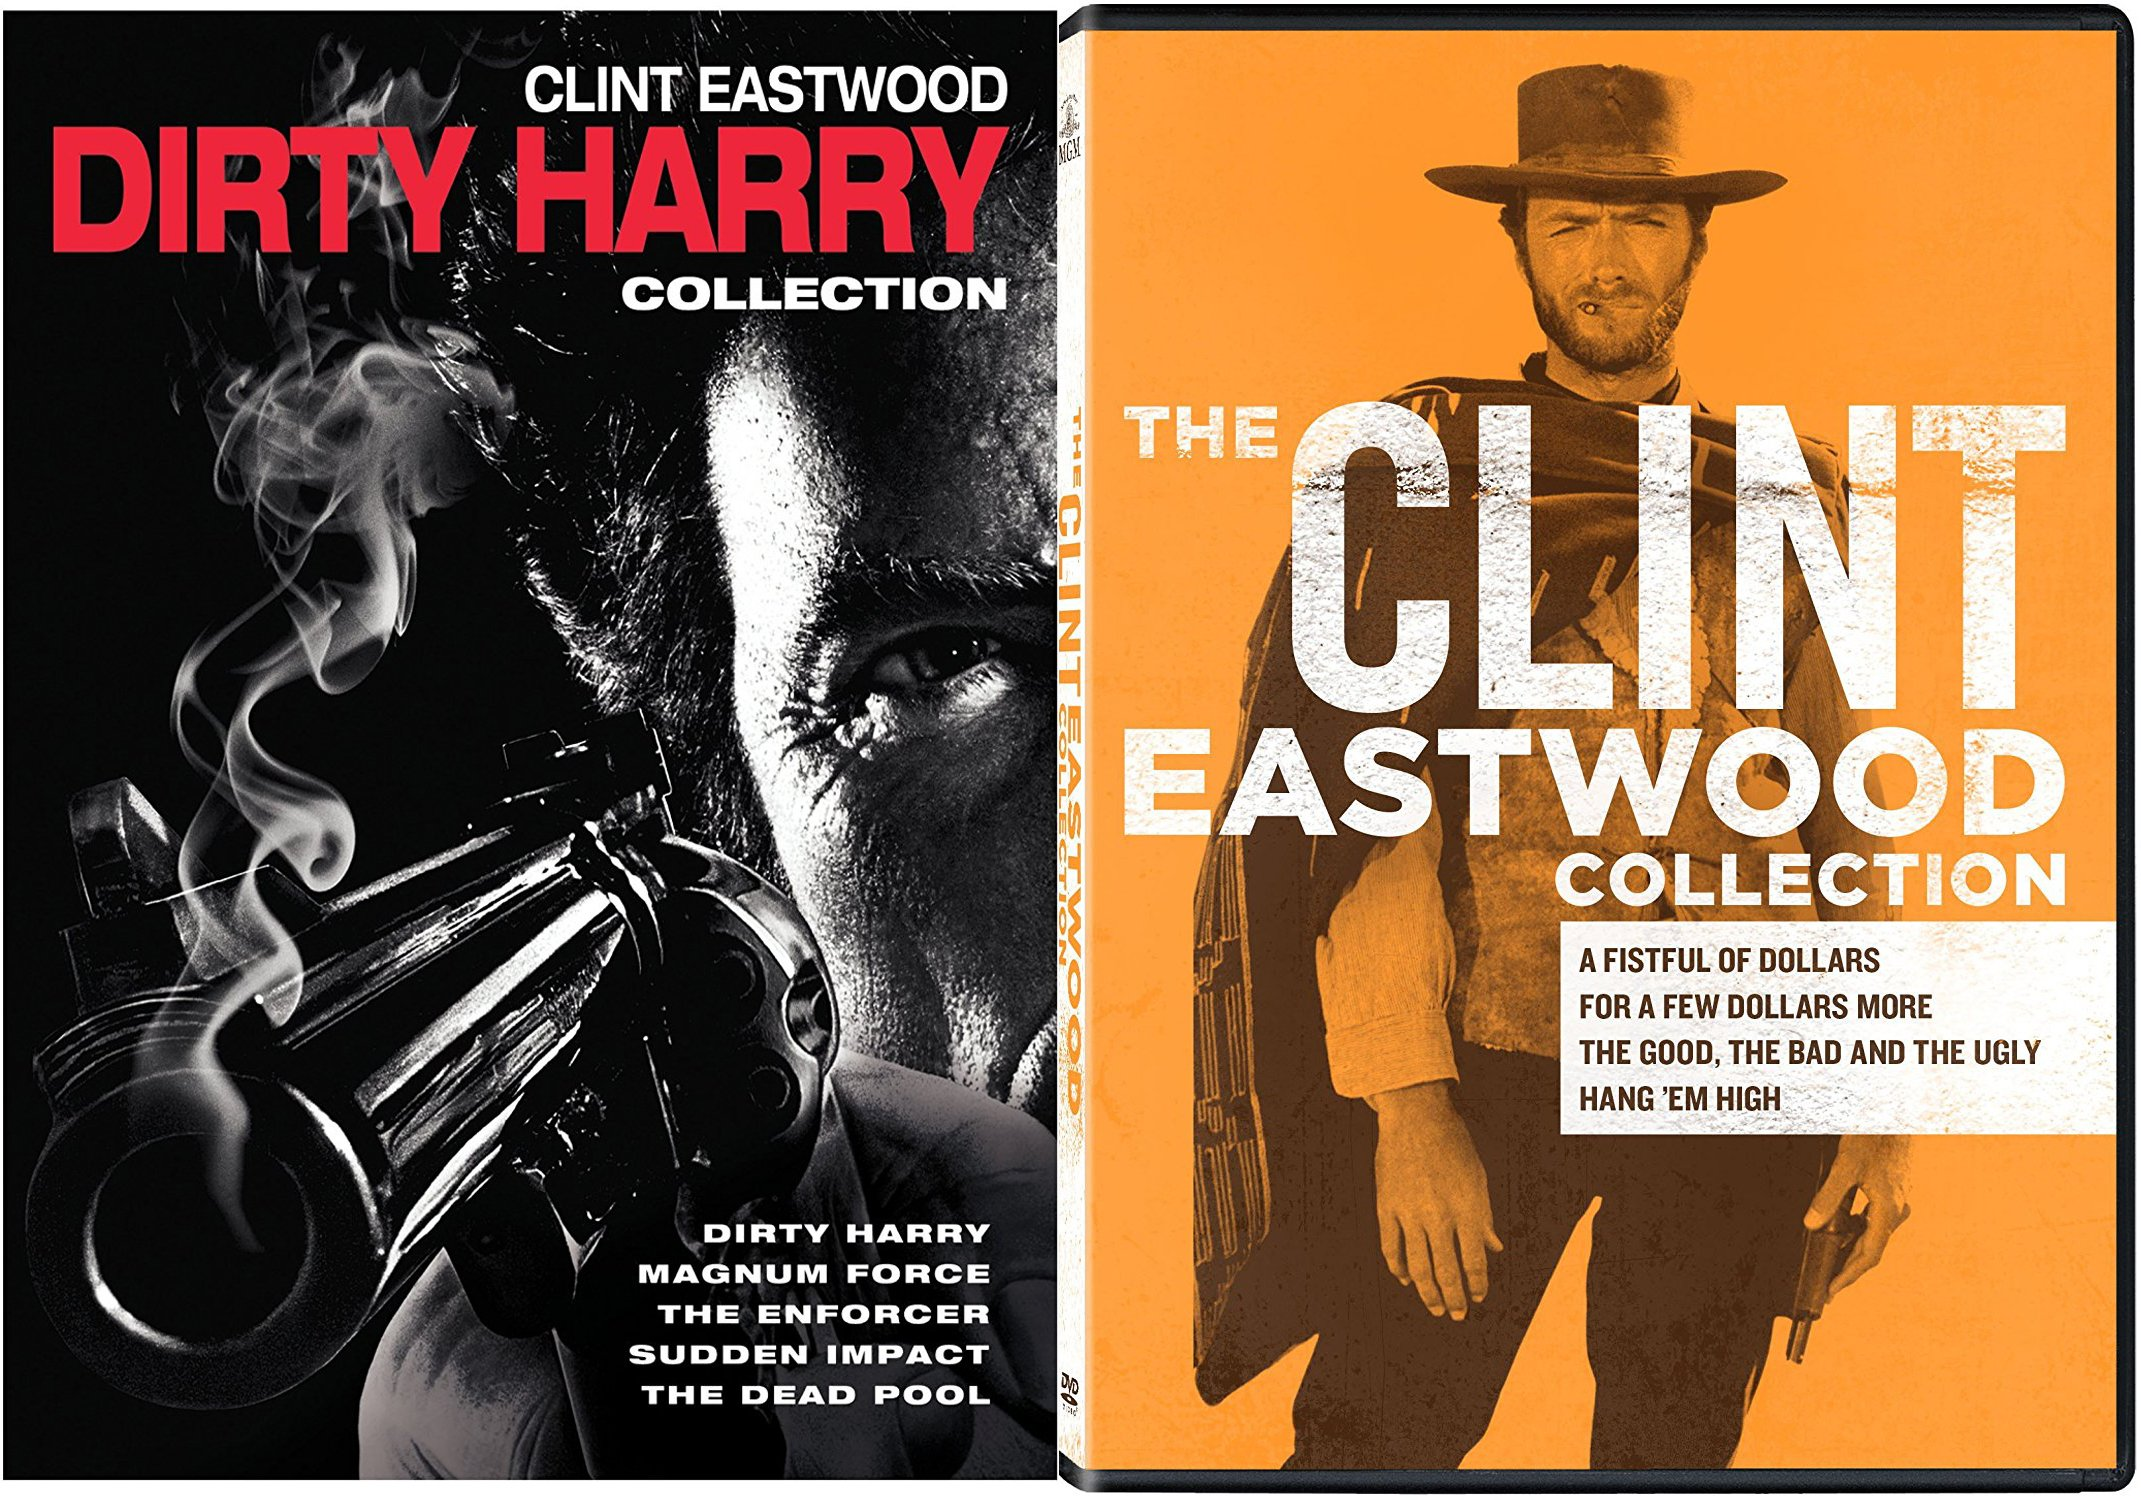 Clint Eastwood Collection Western The Man with no Name + The Dirty Harry Complete Series 9 Movie DVD Set by Warner Brothers Home